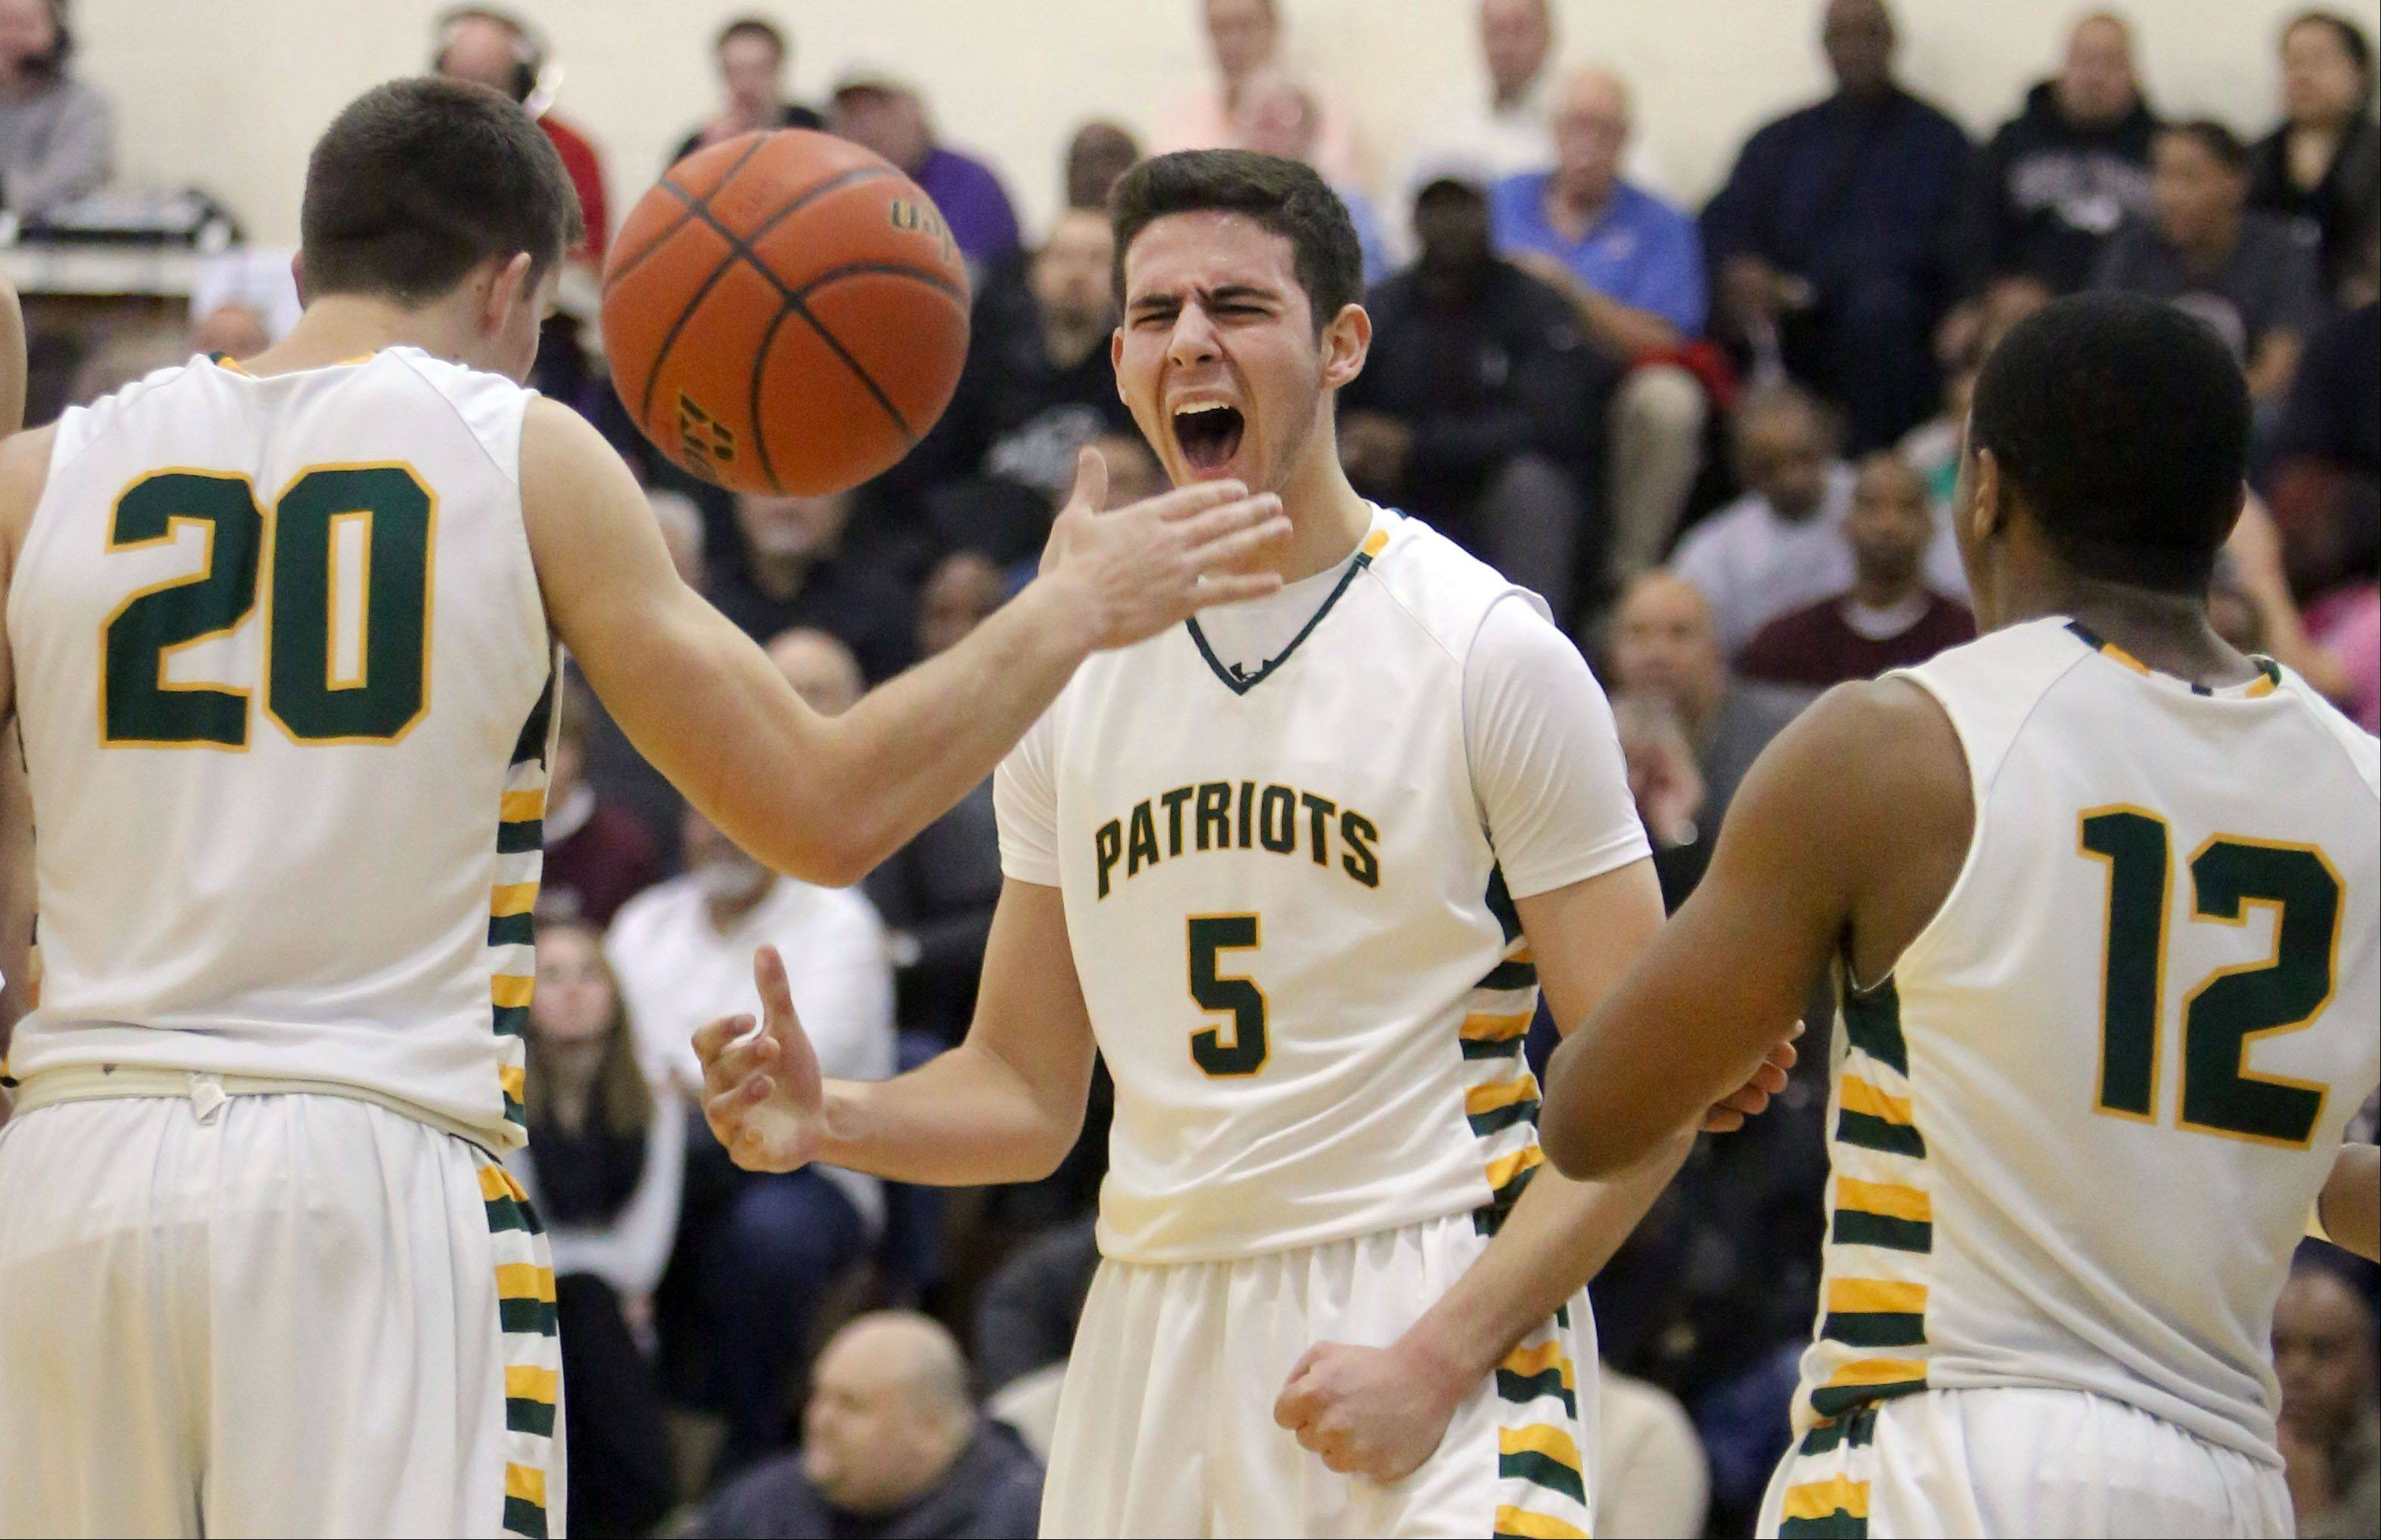 Images: Stevenson vs. Zion-Benton boys basketball